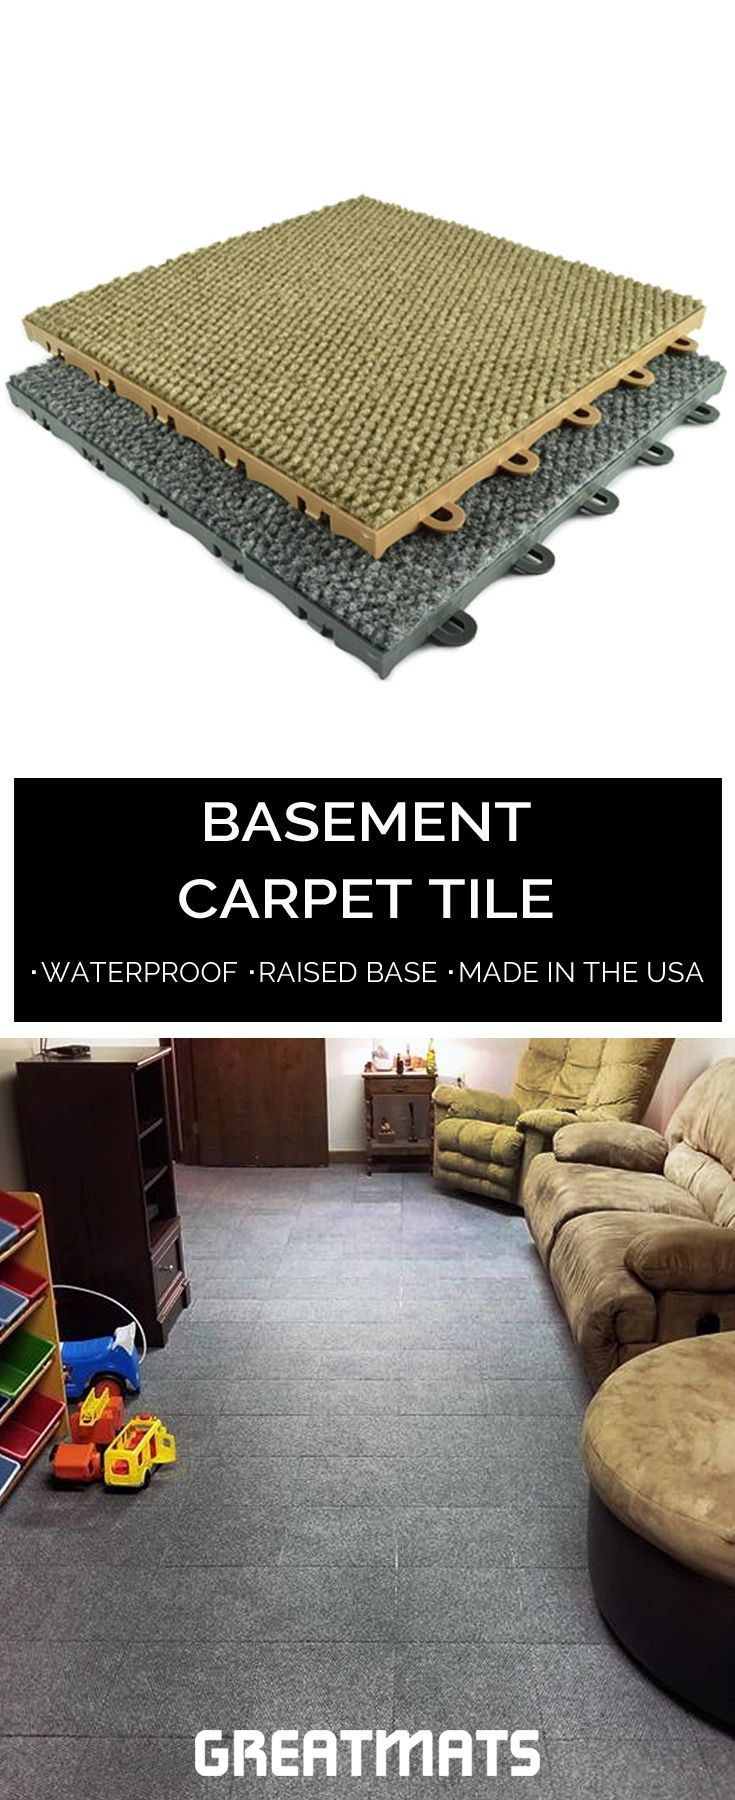 Our Own Bat Carpet Tiles Are Made In The Usa And Easy To Install Tile